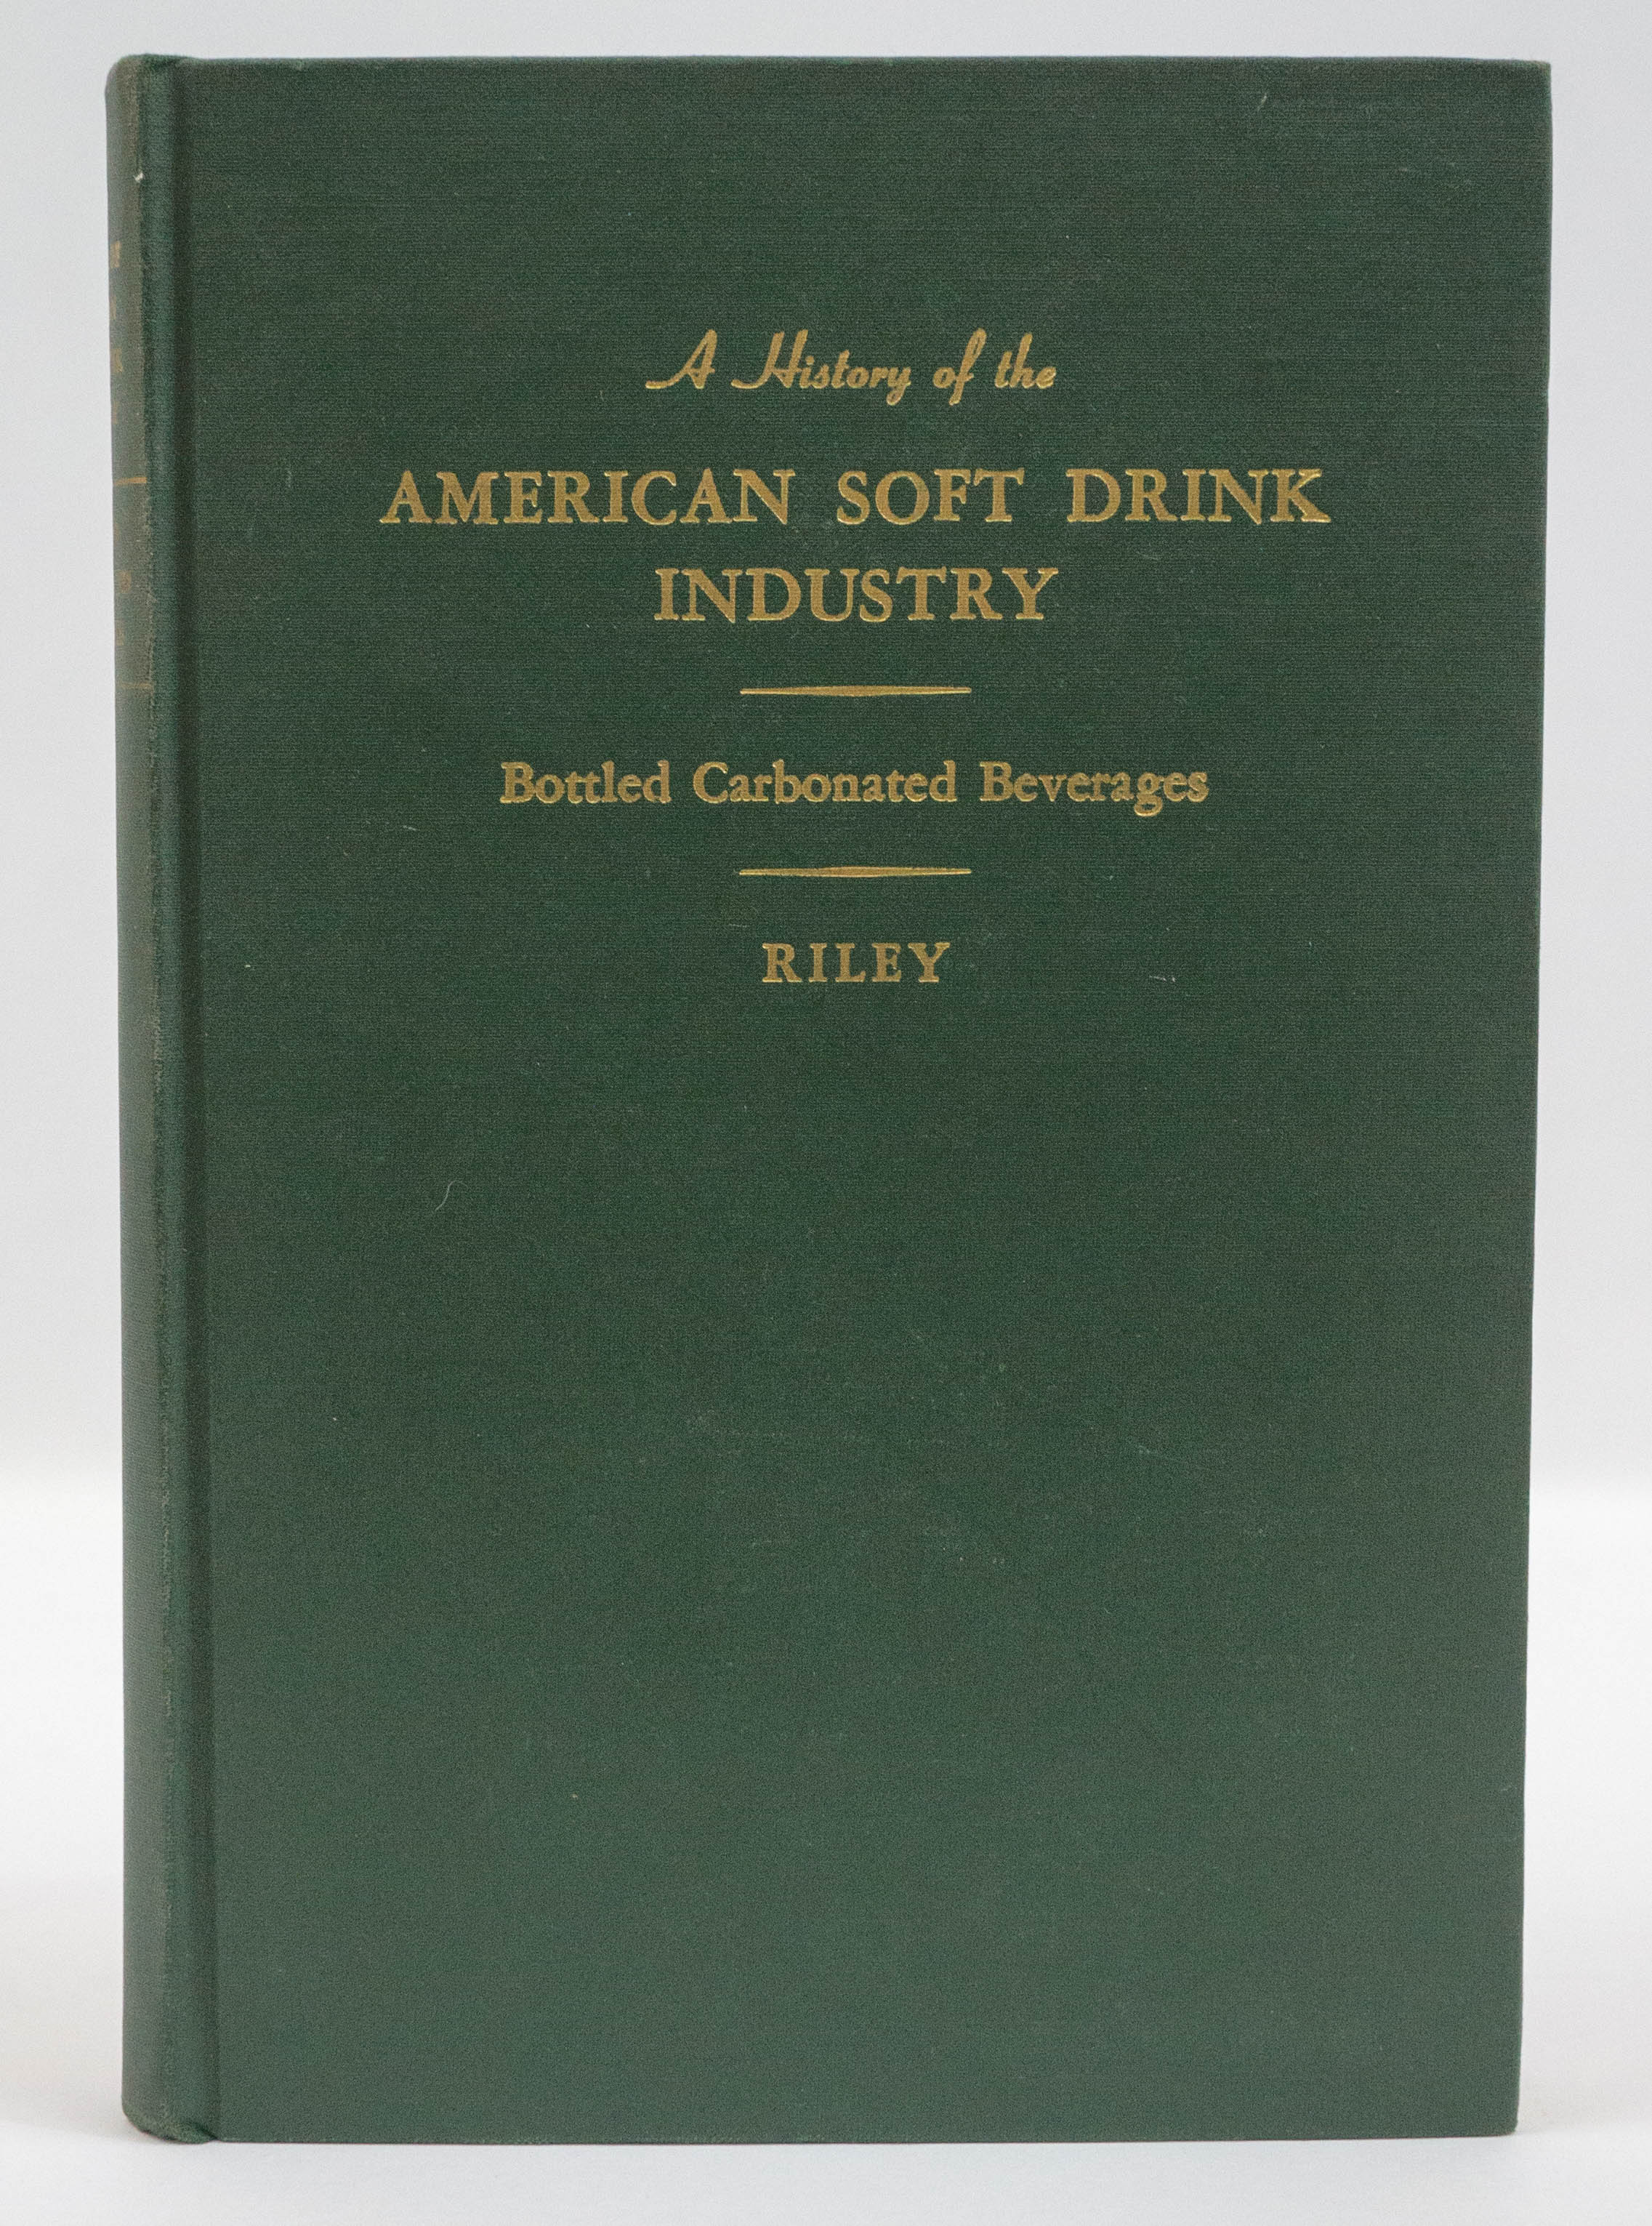 A History of the American Soft Drink Industry 1958